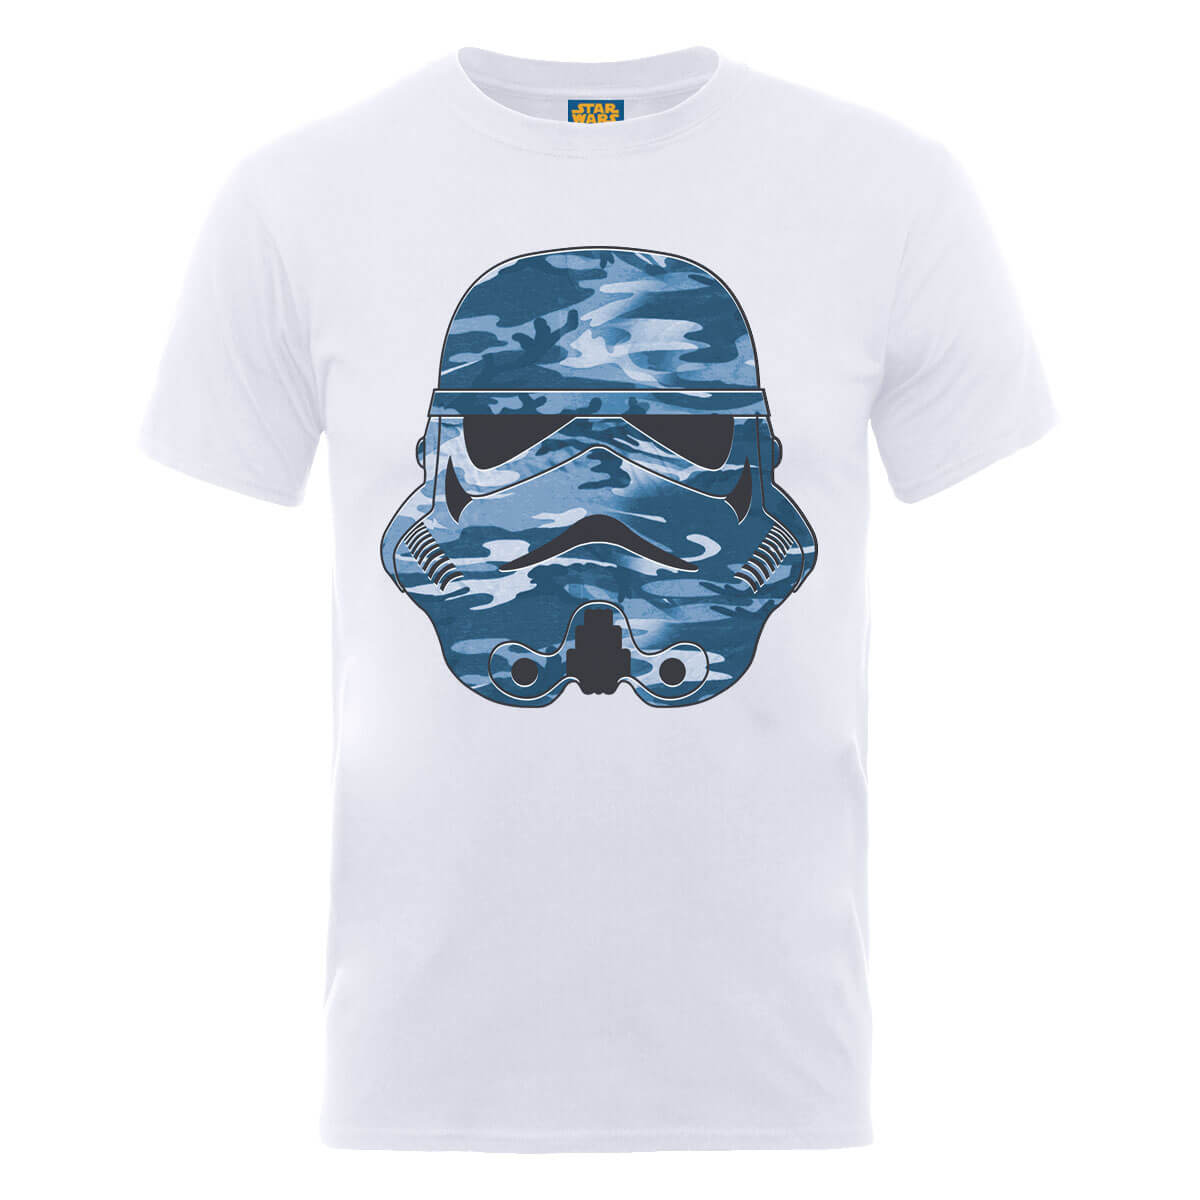 Star Wars Stormtrooper Blue Camo T-Shirt - White